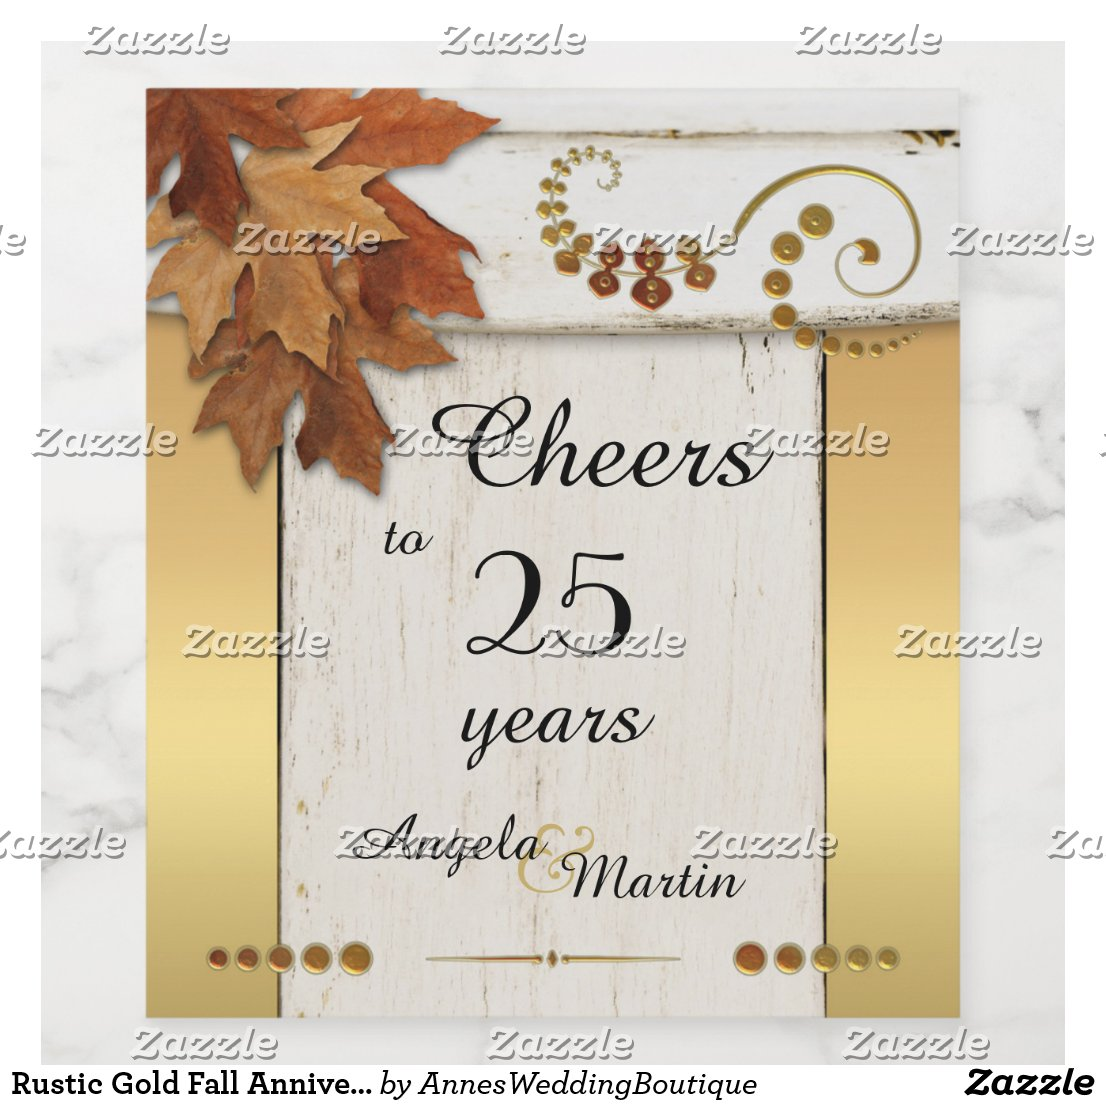 Rustic Gold Fall Anniversary Wine Label